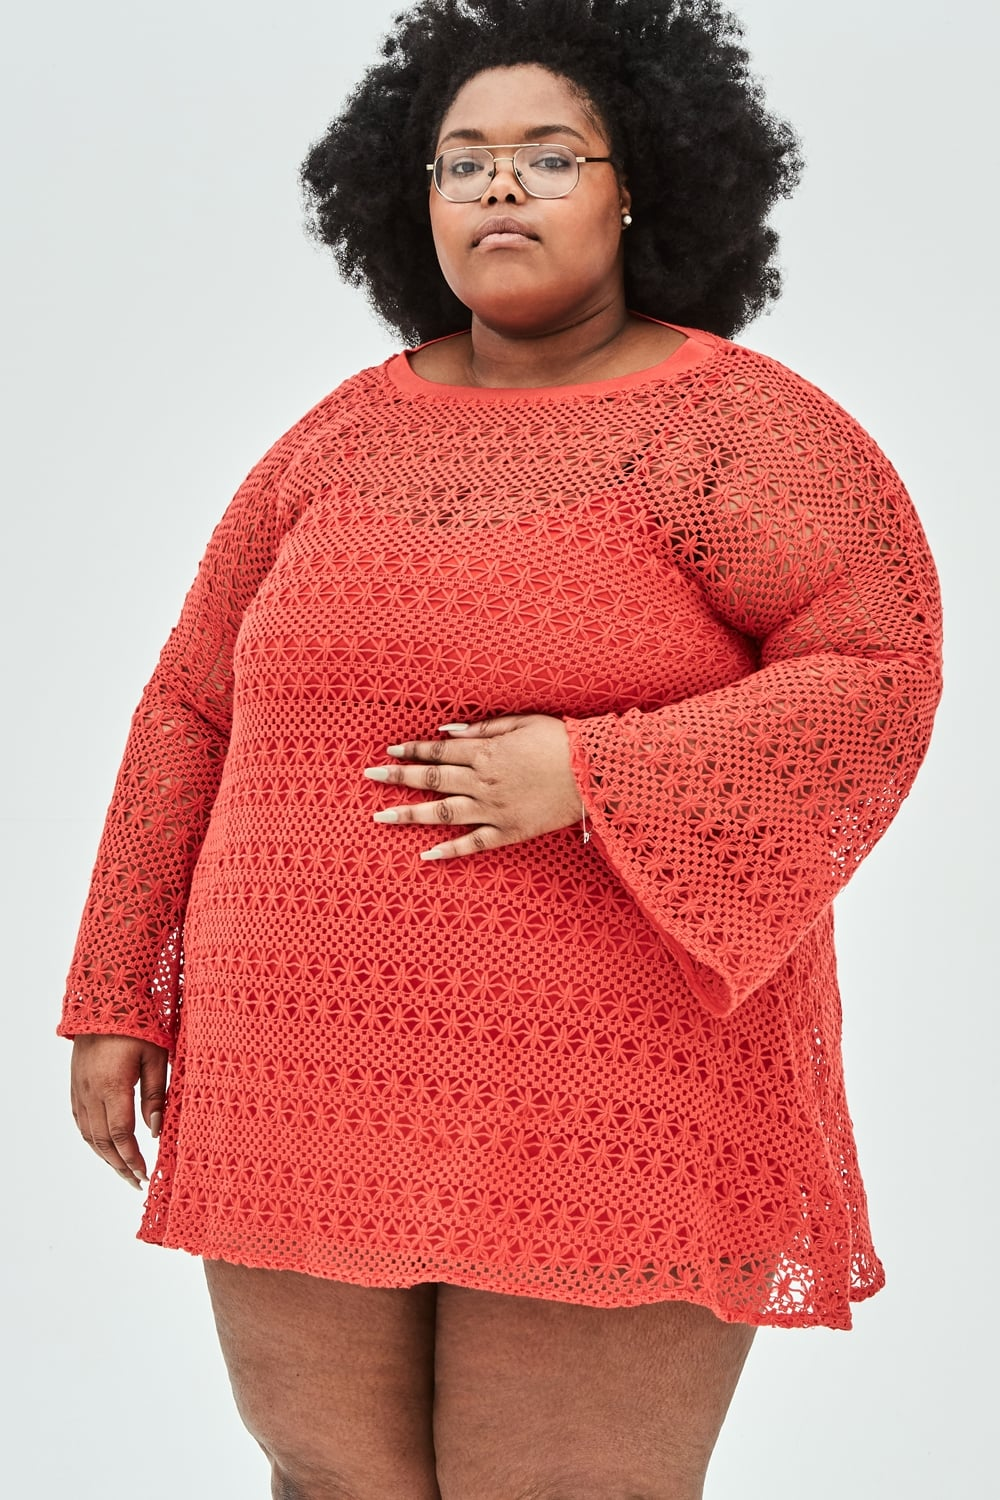 Elvi clothing size inclusive body positive campaign